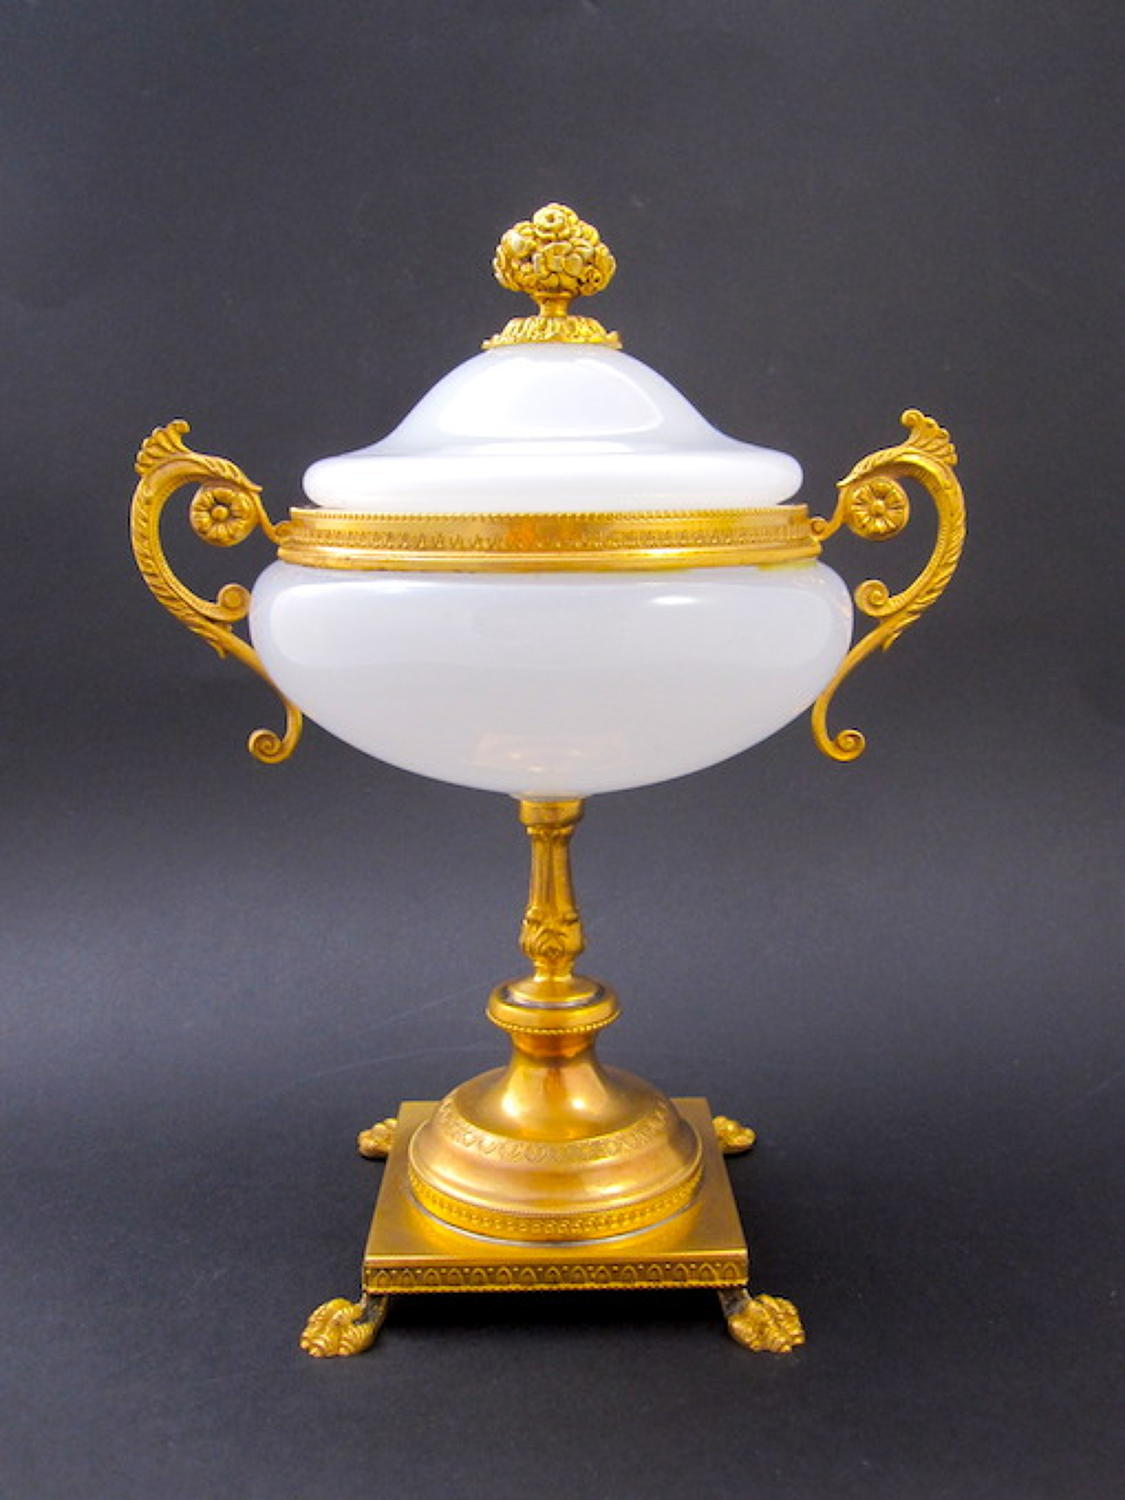 Antique French Opaline and Bronze Centrepiece